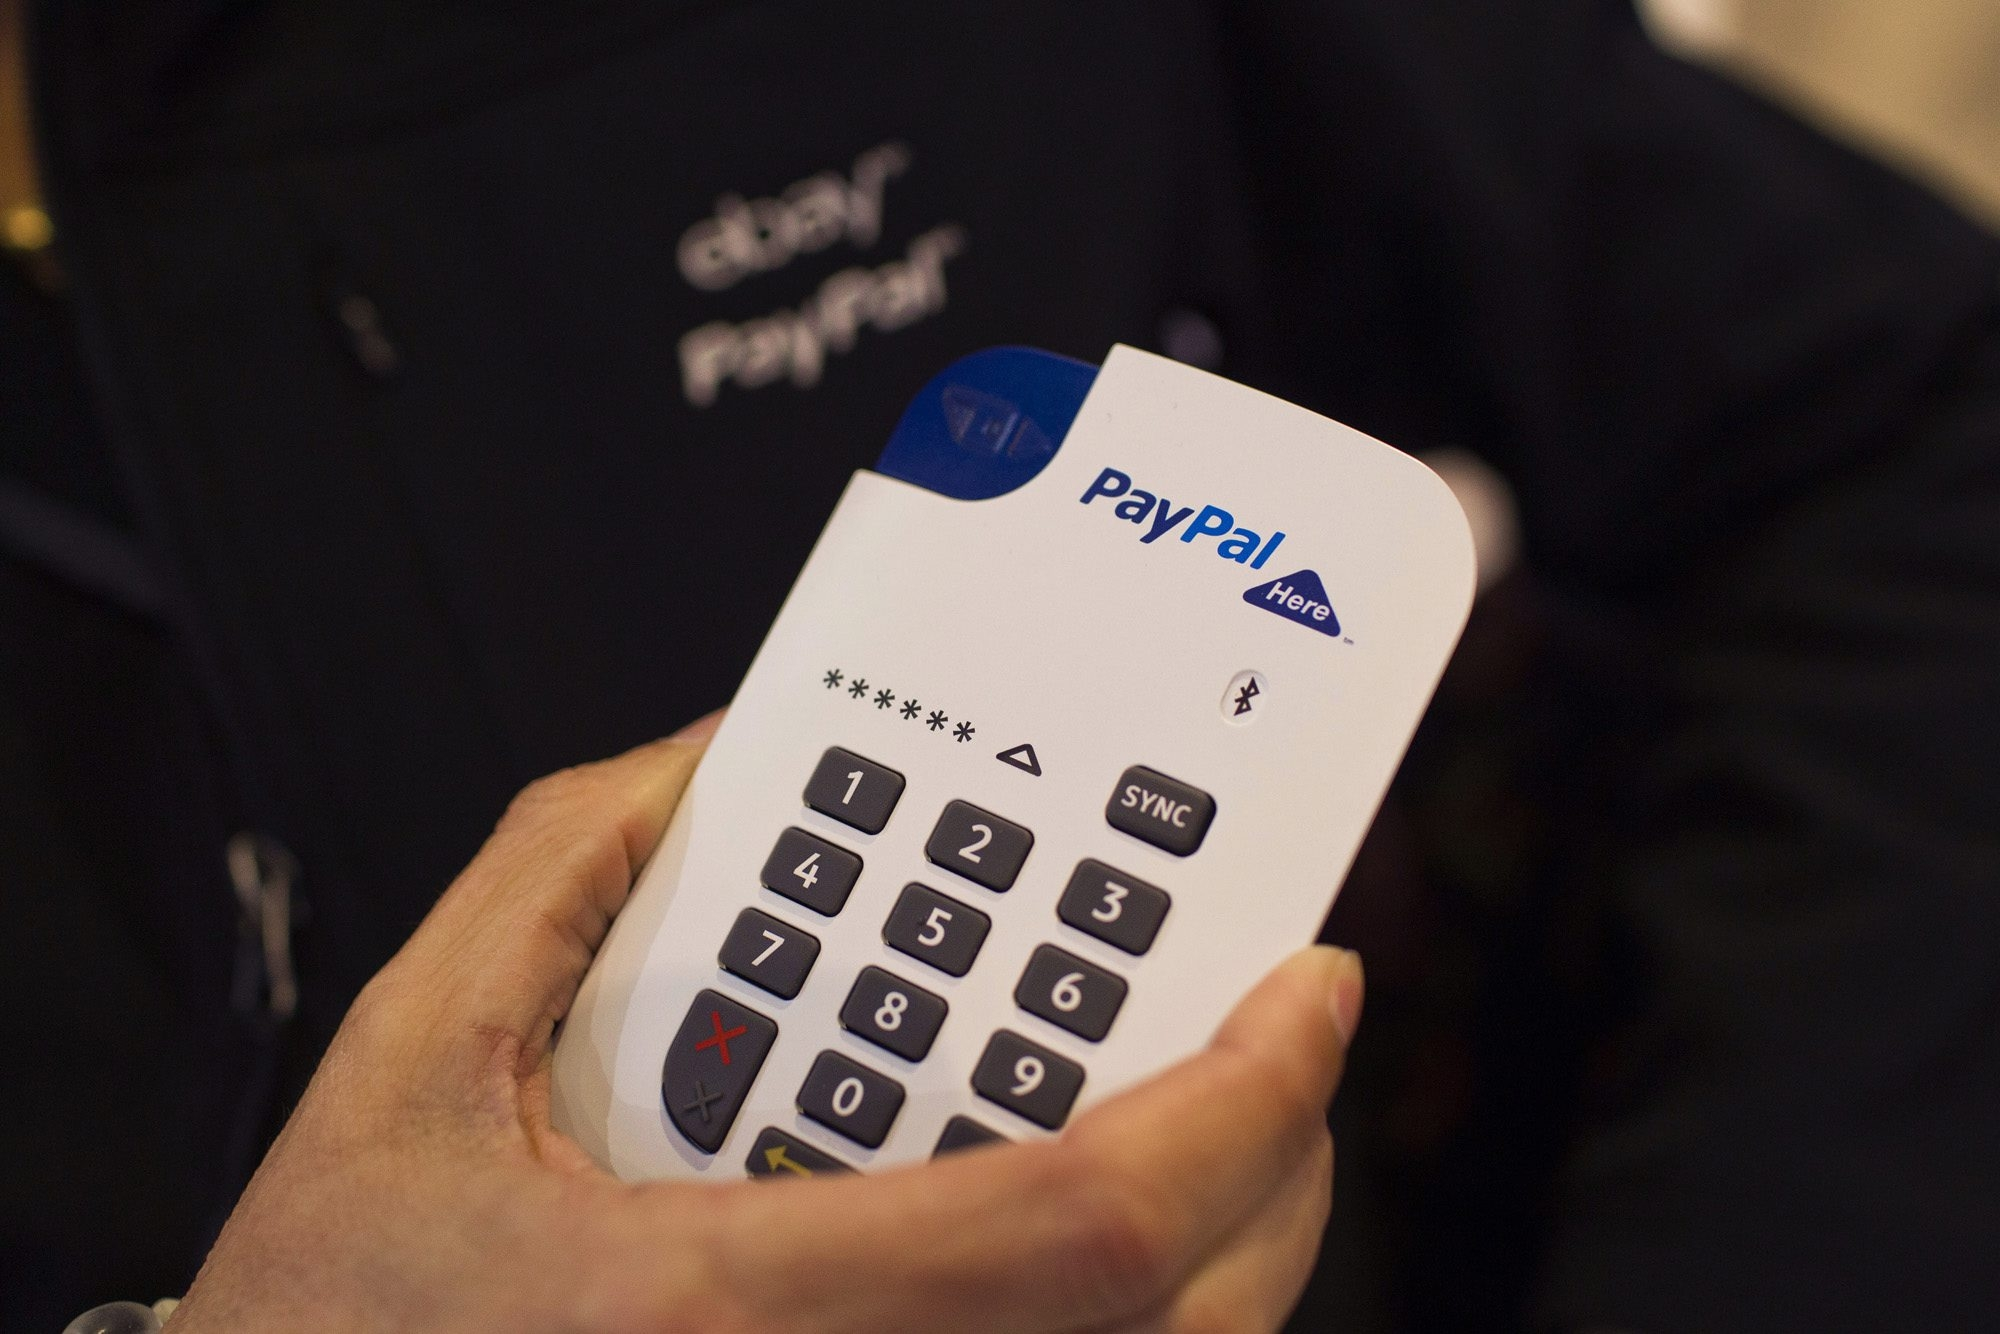 PayPal, with its new chip-and-pin payment device for small businesses, is up against some cutthroat competition.